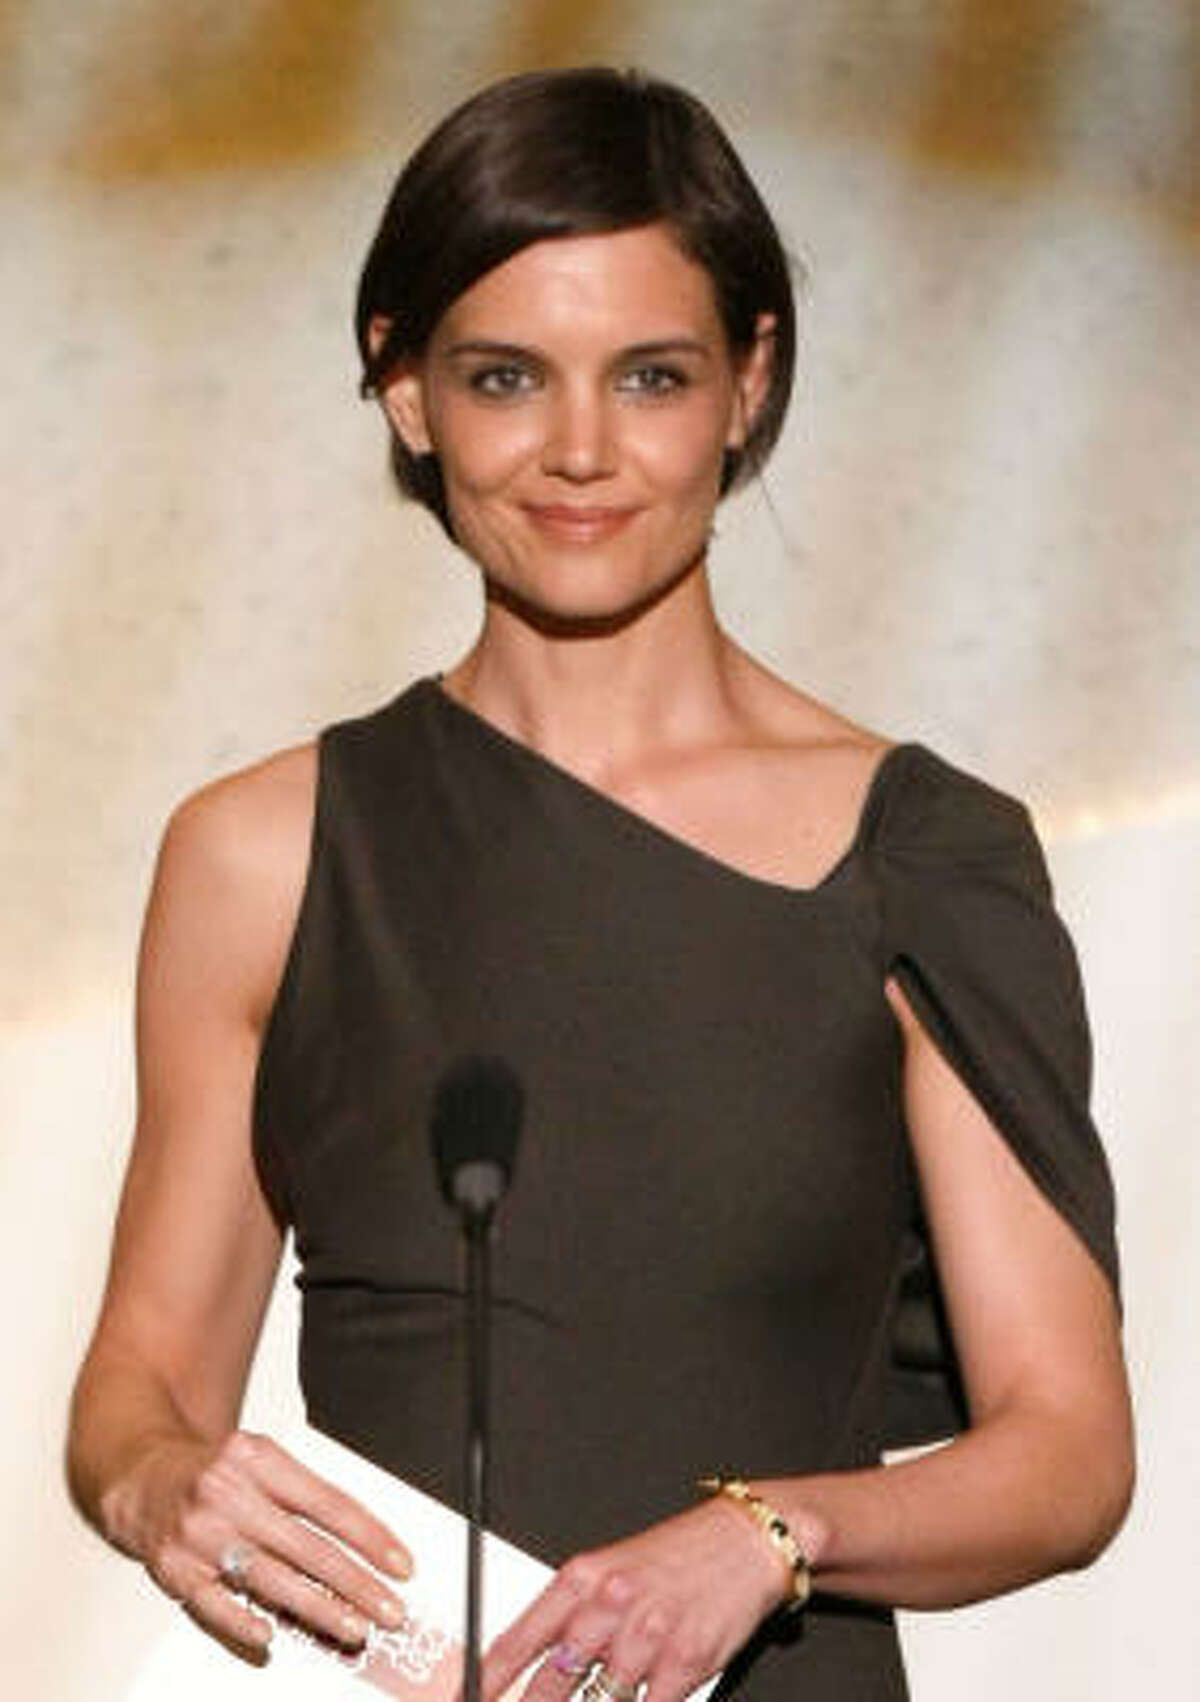 Actress Katie Holmes married Tom Cruise in an evening wedding performed by a Scientology minister.